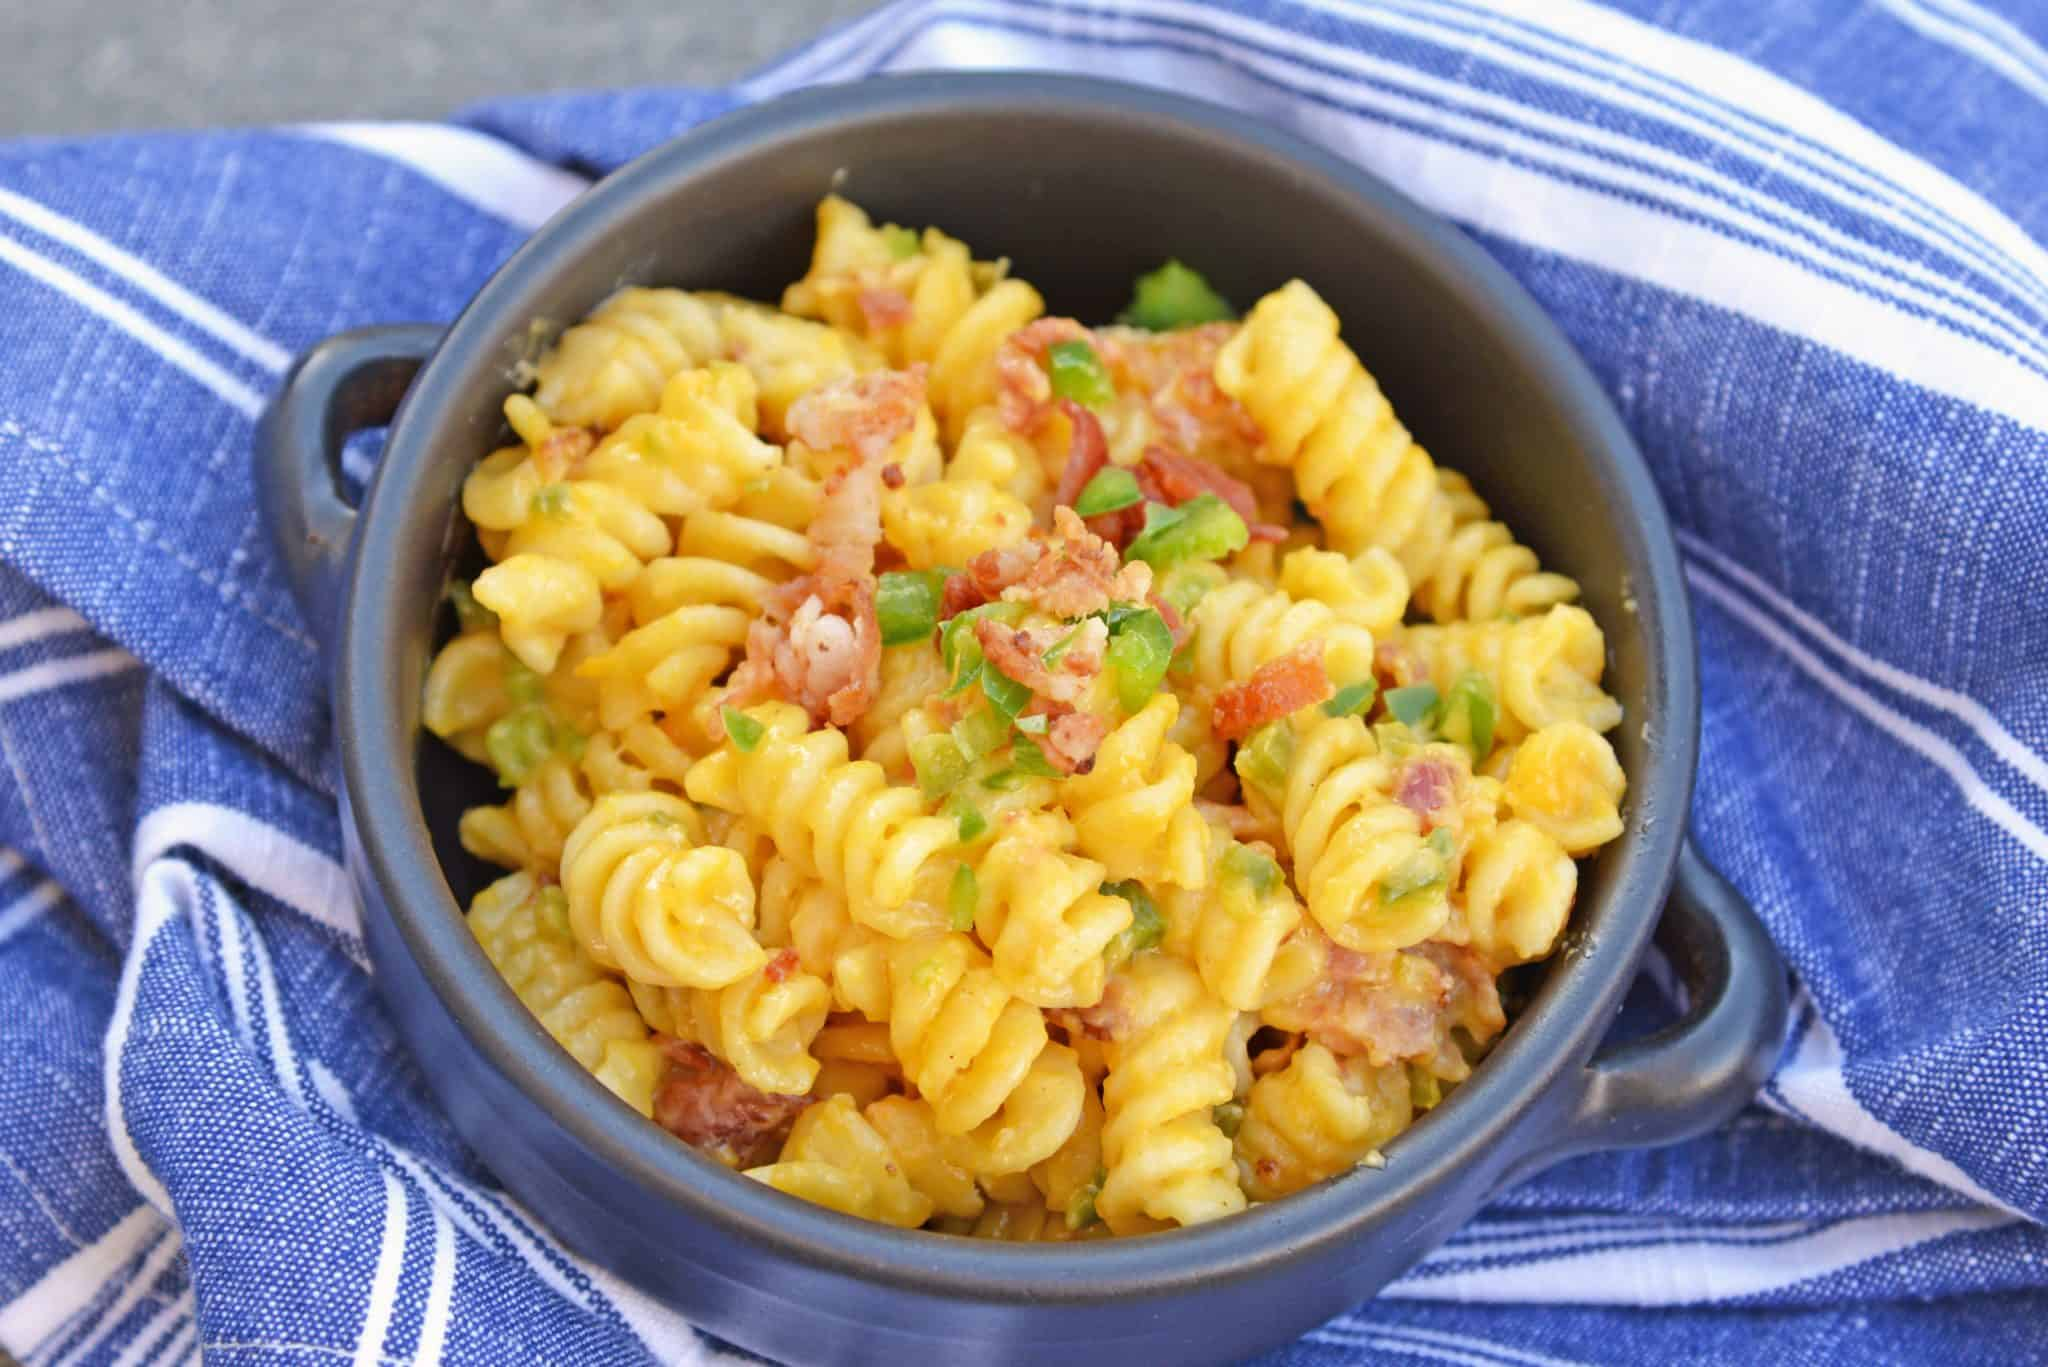 Delicious Three Cheese Jalapeno Bacon Mac and Cheese is the BEST mac and cheese recipe made in the slow cooker with gouda, cheddar bacon and jalapenos!